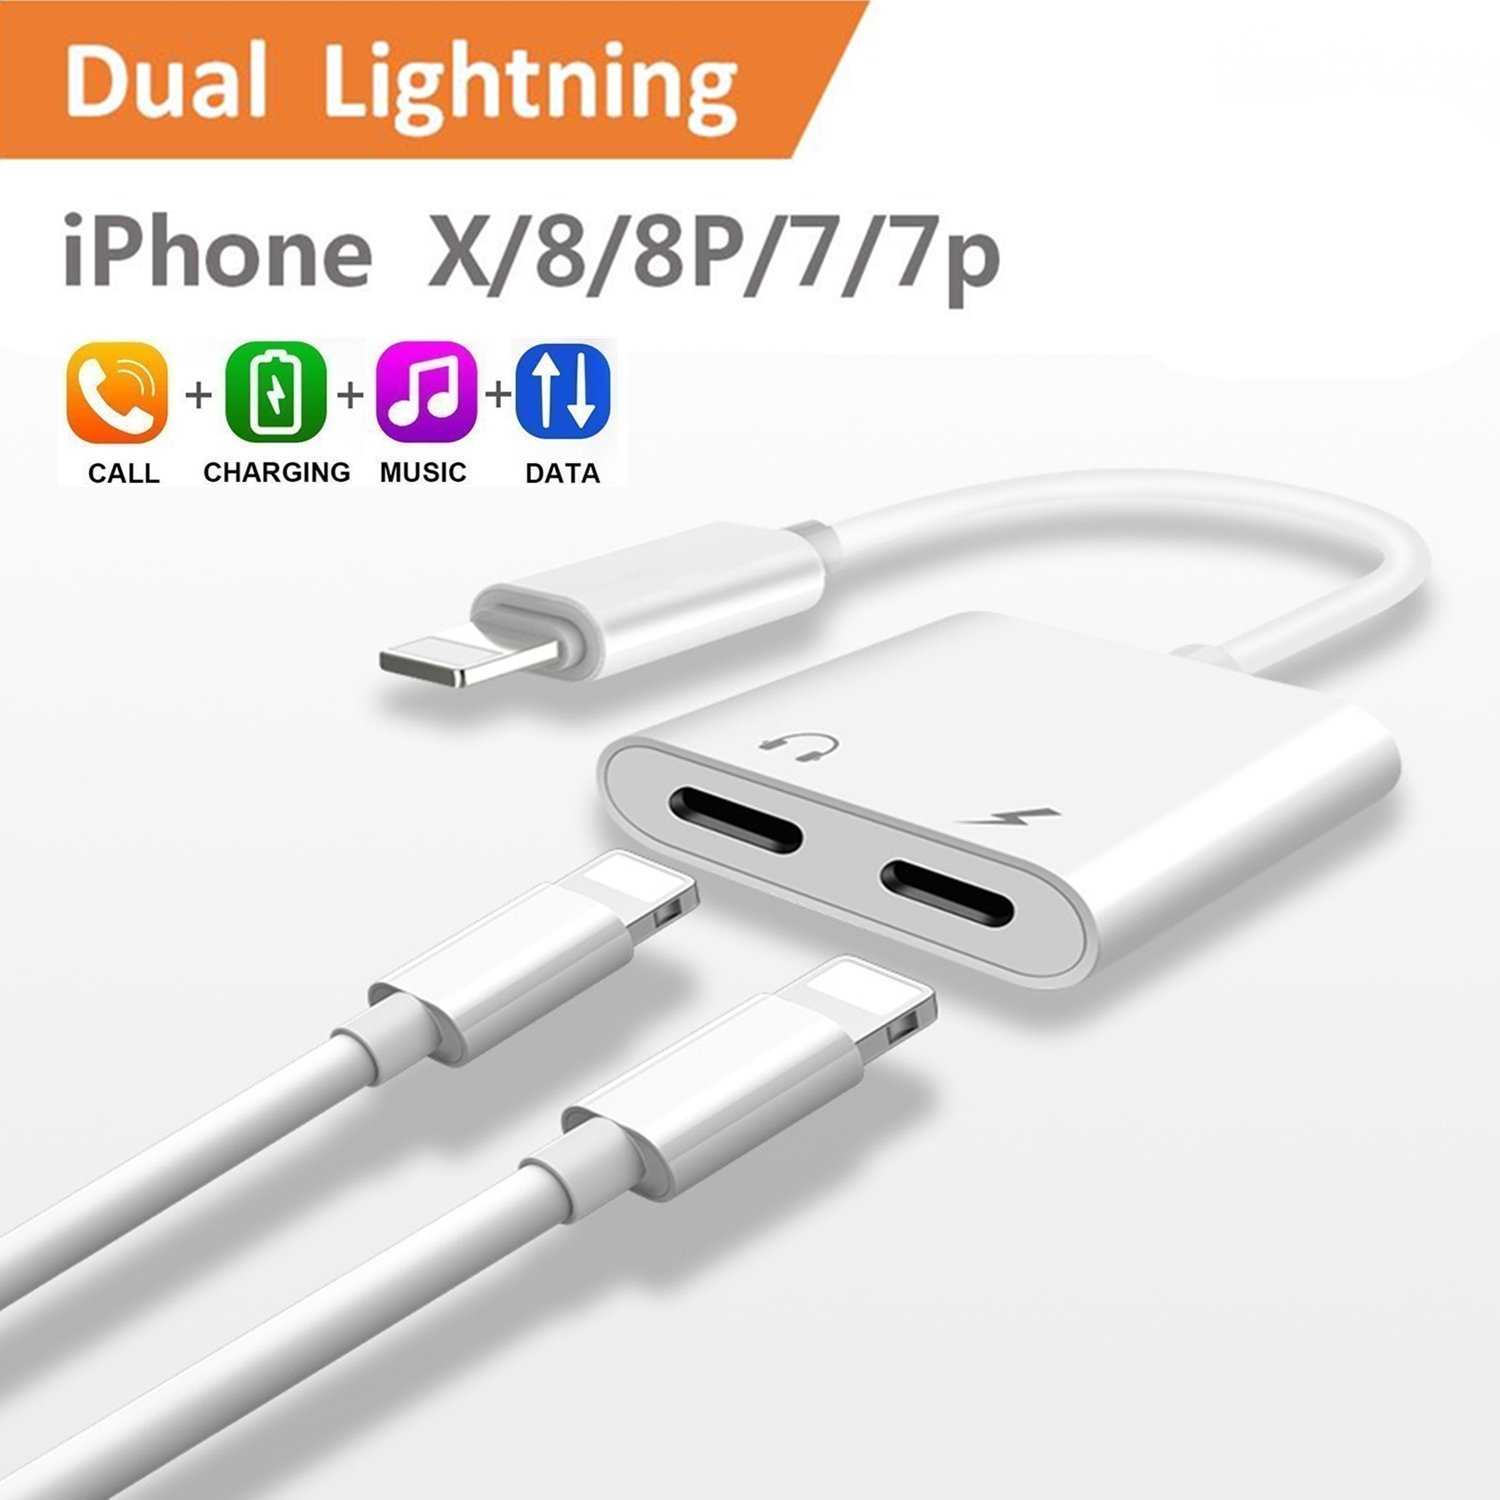 2-in-1 Lightning Splitter Adapter for iPhone 7 / 8 / X / 7 plus / 8 plus, Double lightning ports for dual Lightning Headphone Audio and Charge Adapter. (Compatible IOS 10.3, IOS 11 and Later)-White